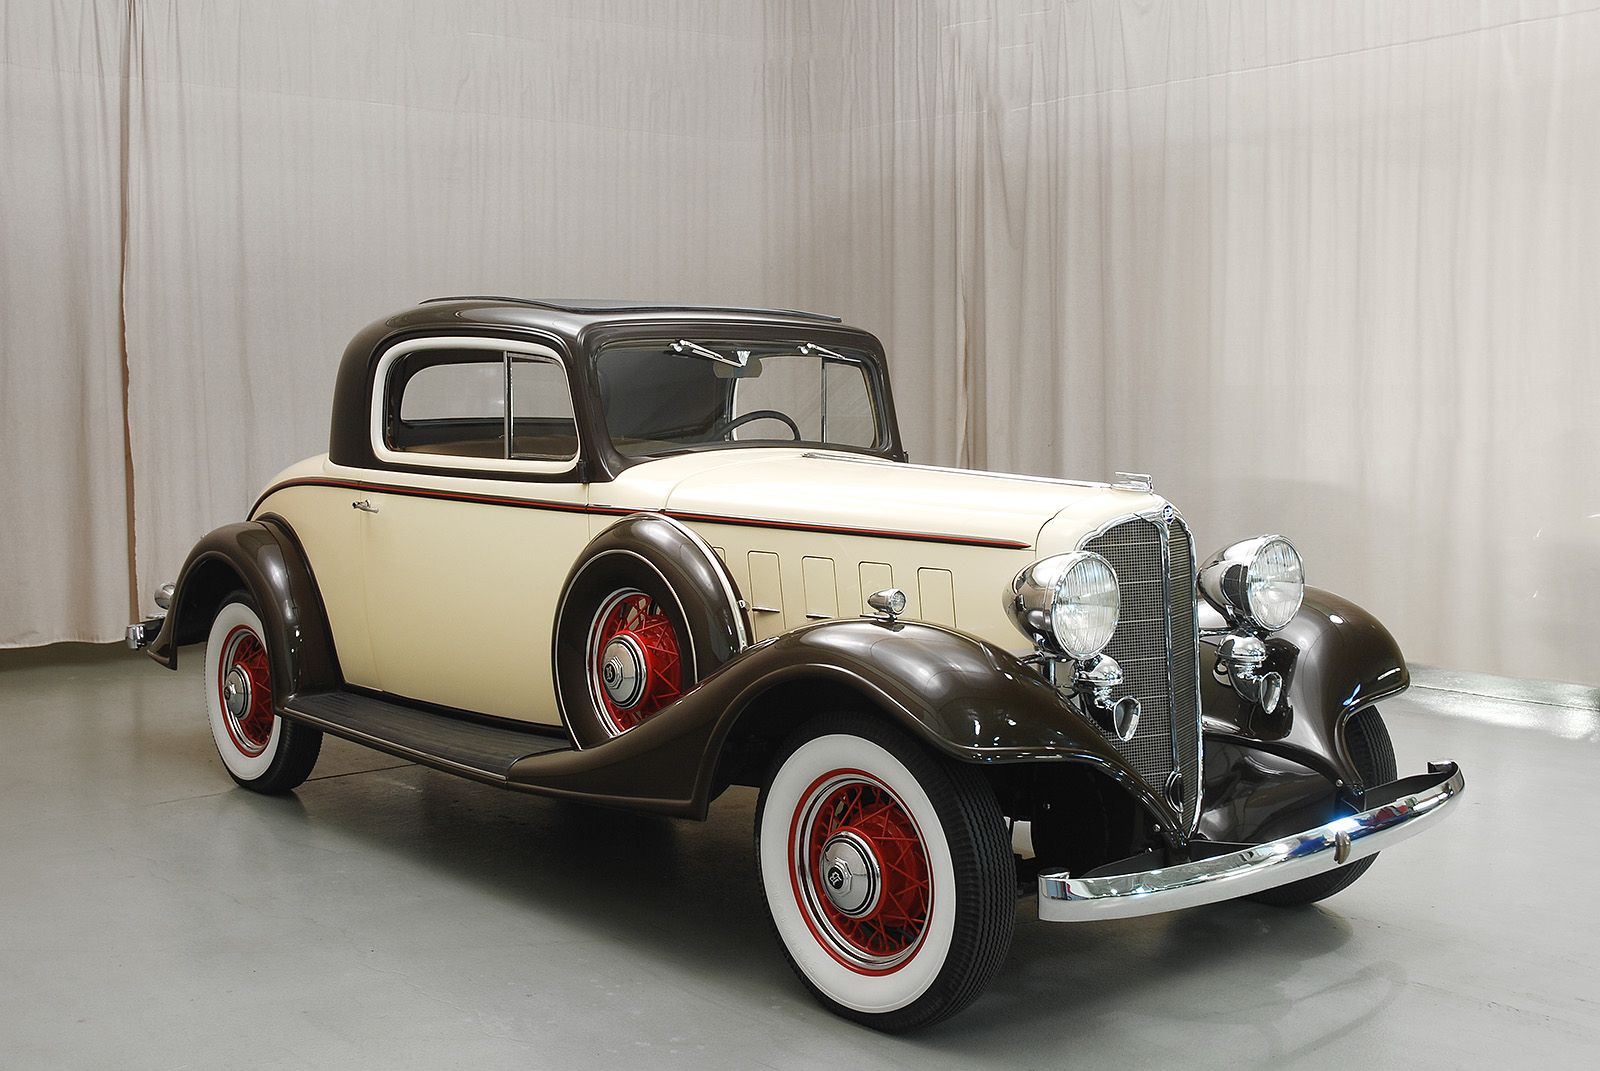 1933 Buick Series 60 Sport Coupe - (Buick Motor Car Co. Flint ...